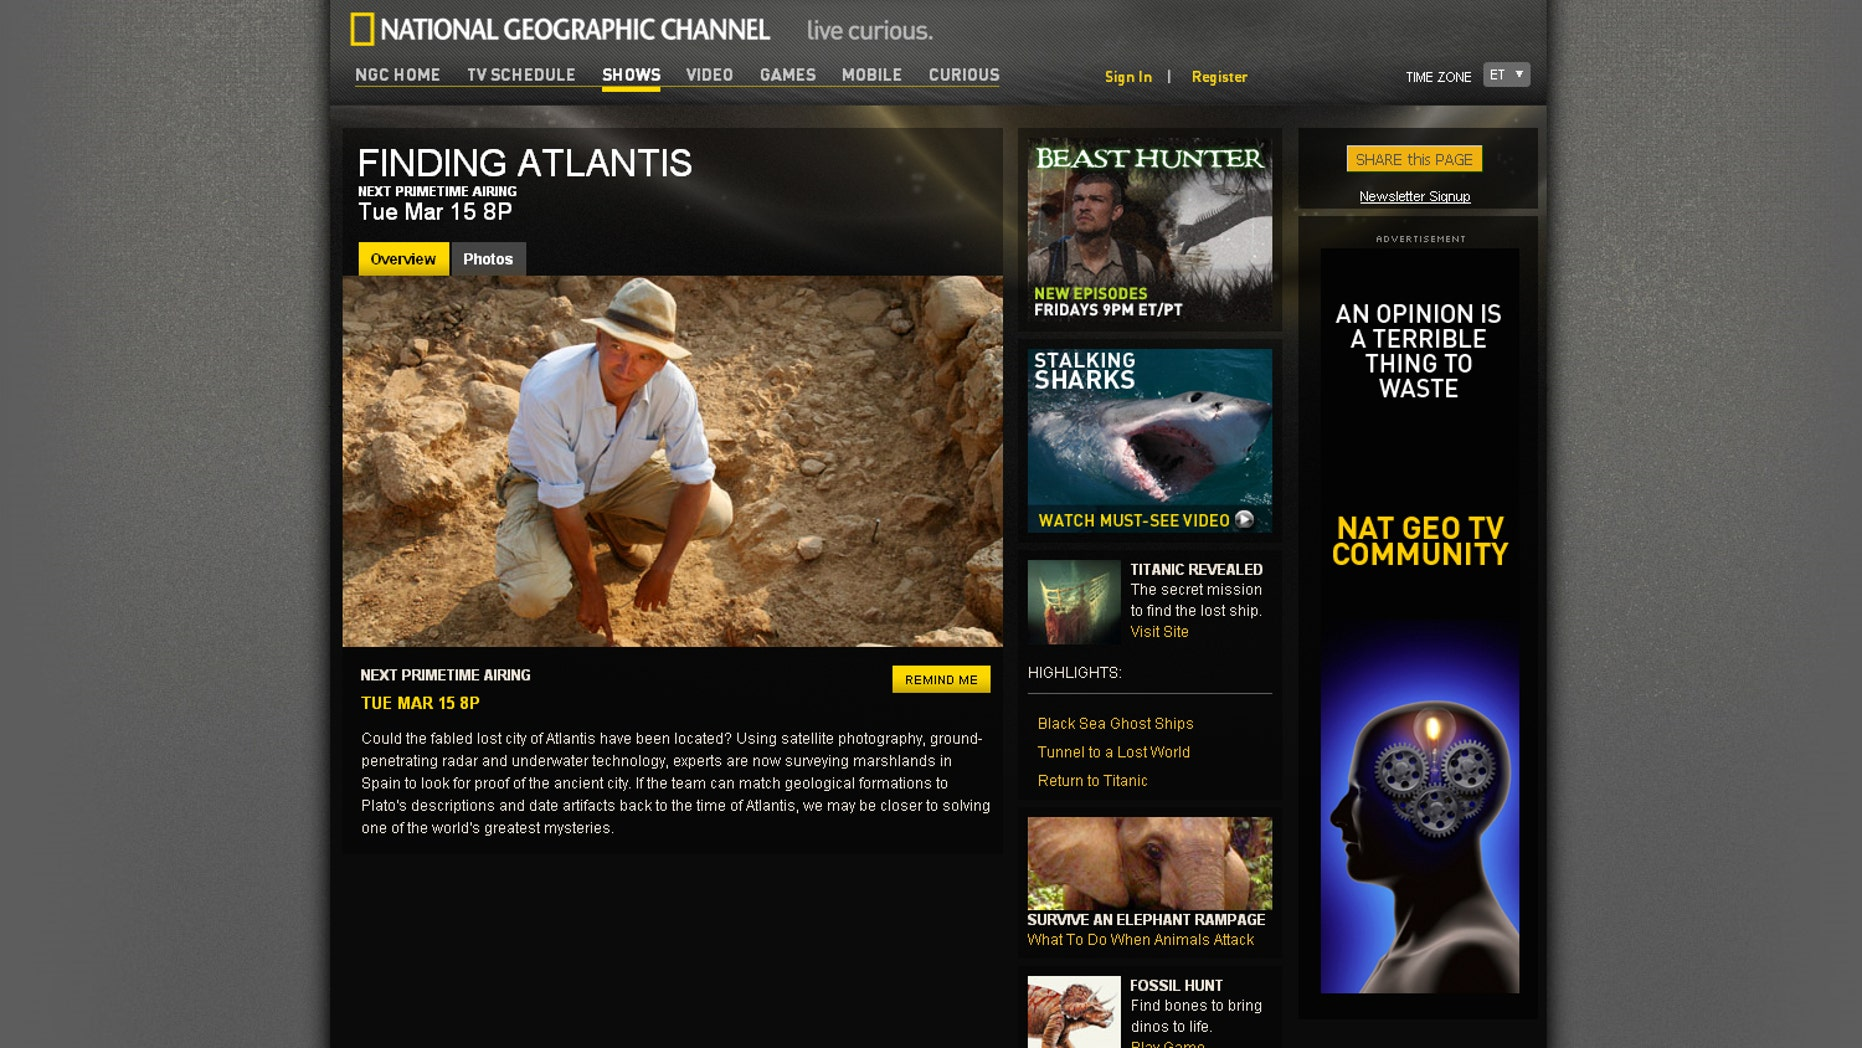 """March 13: National Geographic special """"Finding Atlantis"""" aired, featuring the research of Richard Freund"""